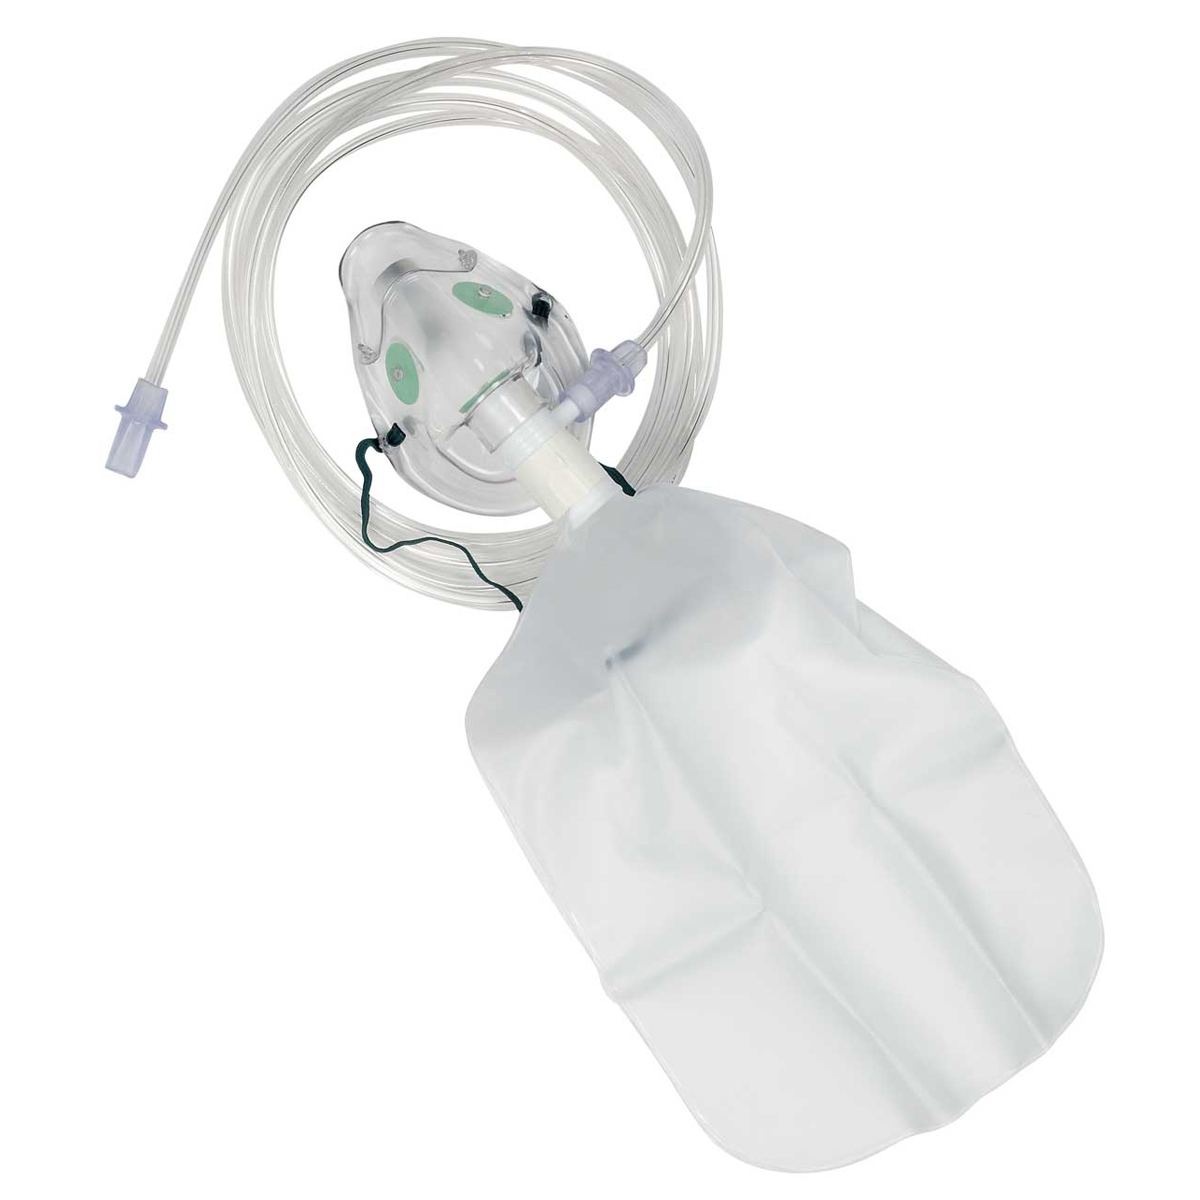 Paediatric High Concentration Non-Rebreathing Oxygen Mask and Tubing